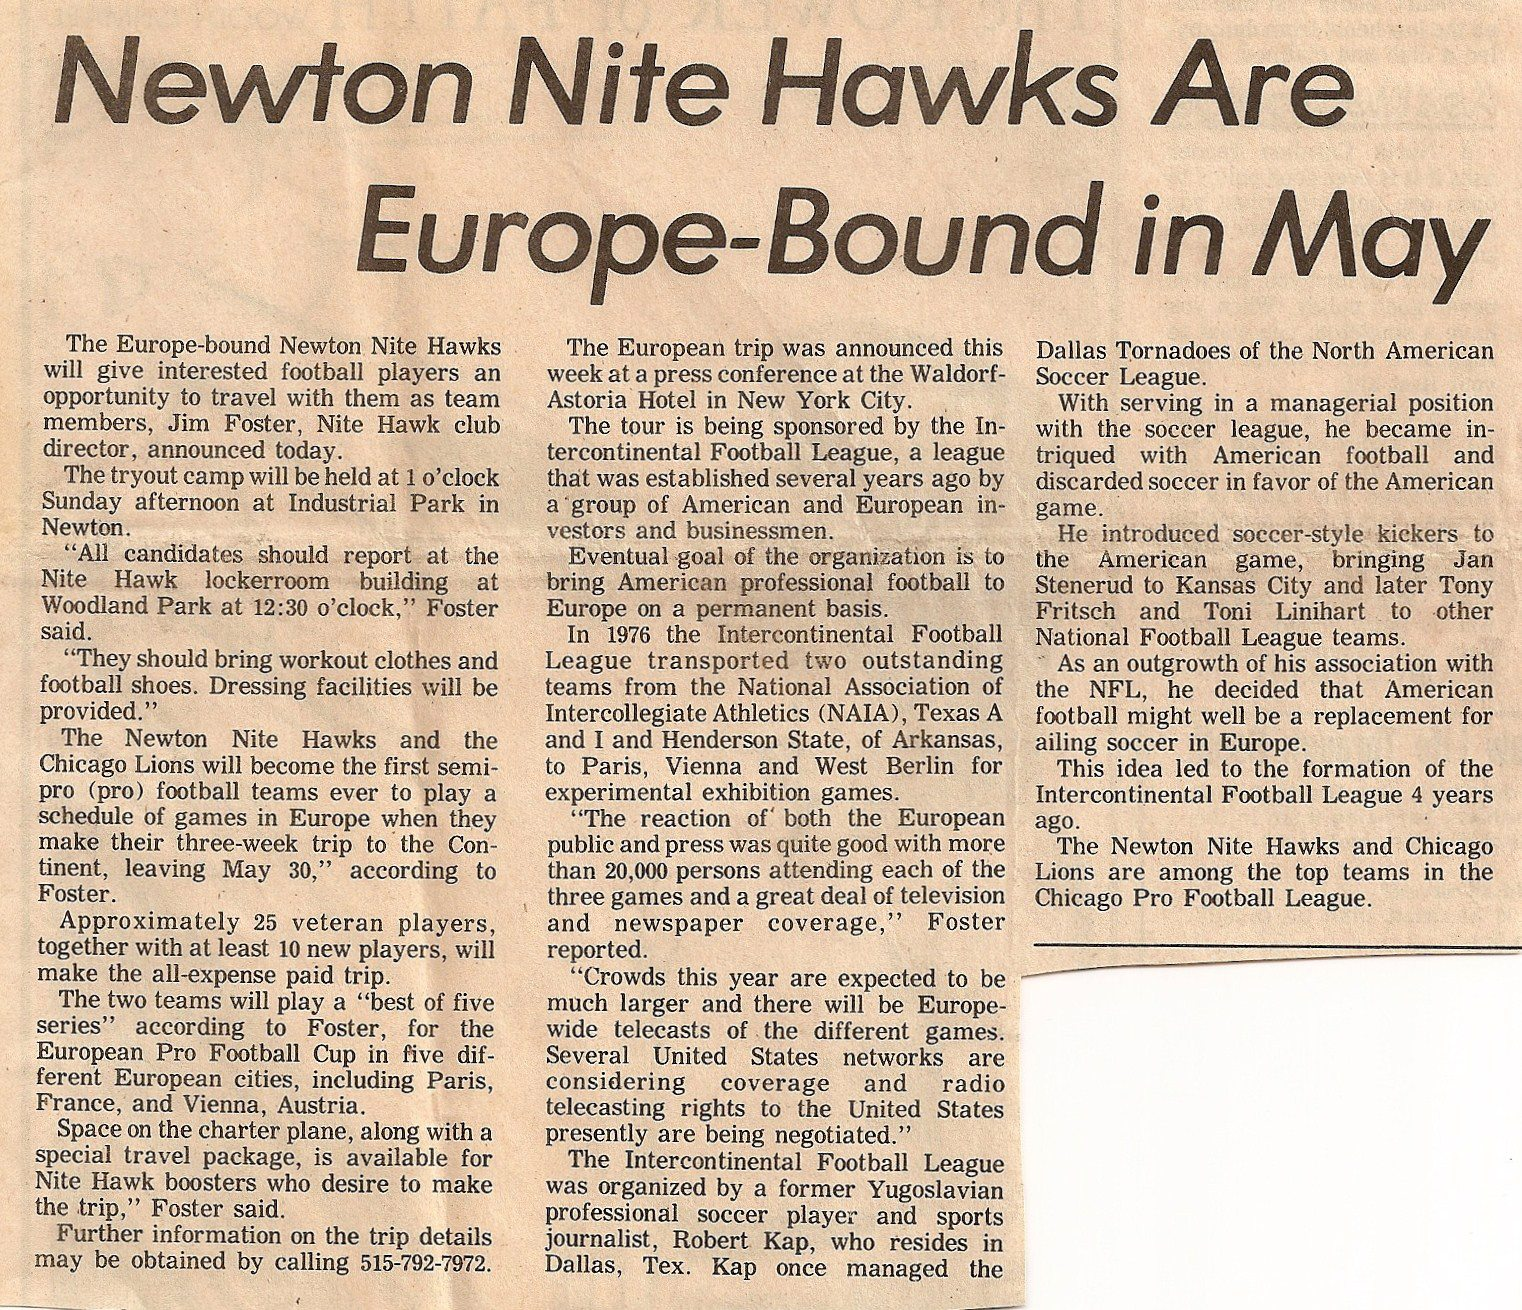 Nitehawks 1977 newspaperclippings 04